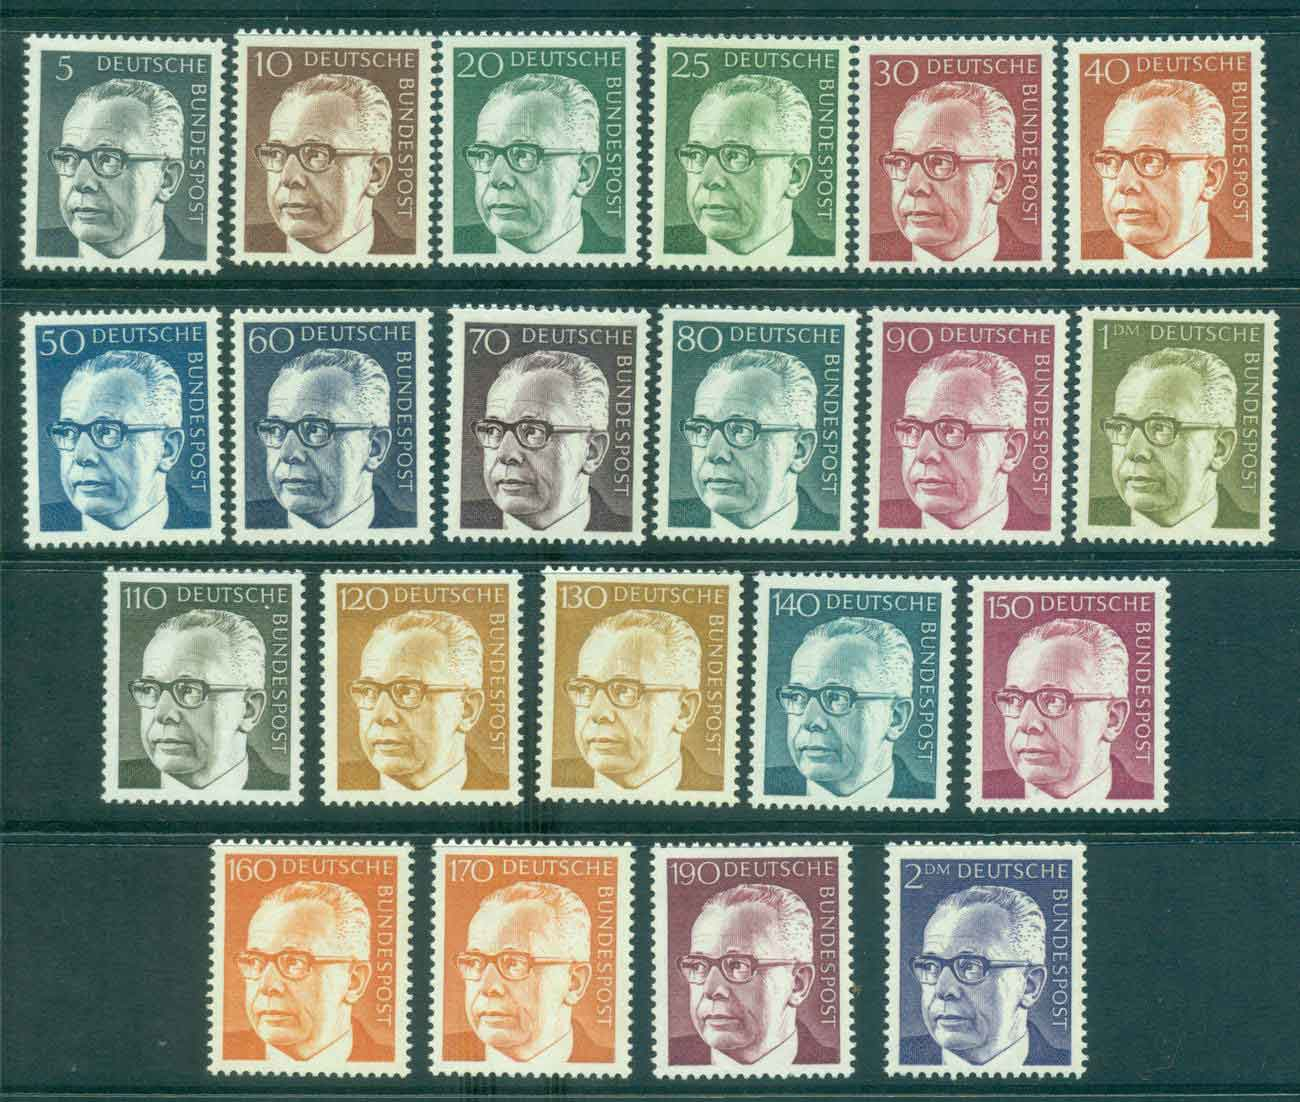 Germany 1970-73 Pres. Gustav Heinemann (21) MLH lot44115